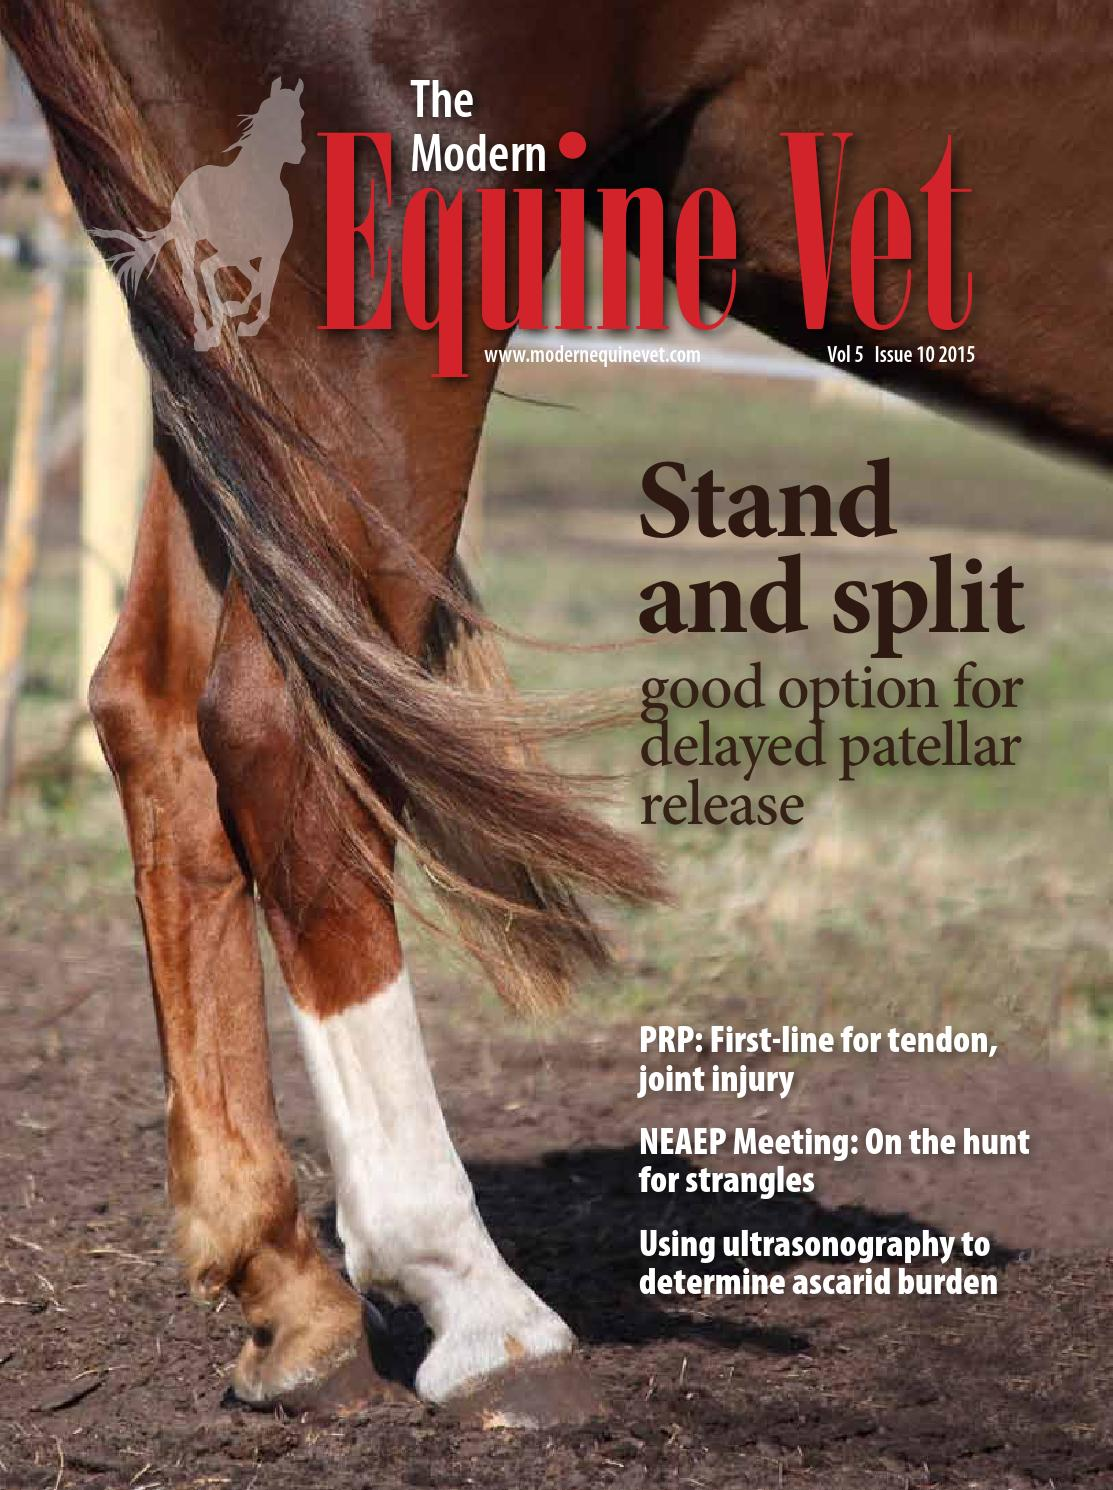 how to become an equine vet in quebec